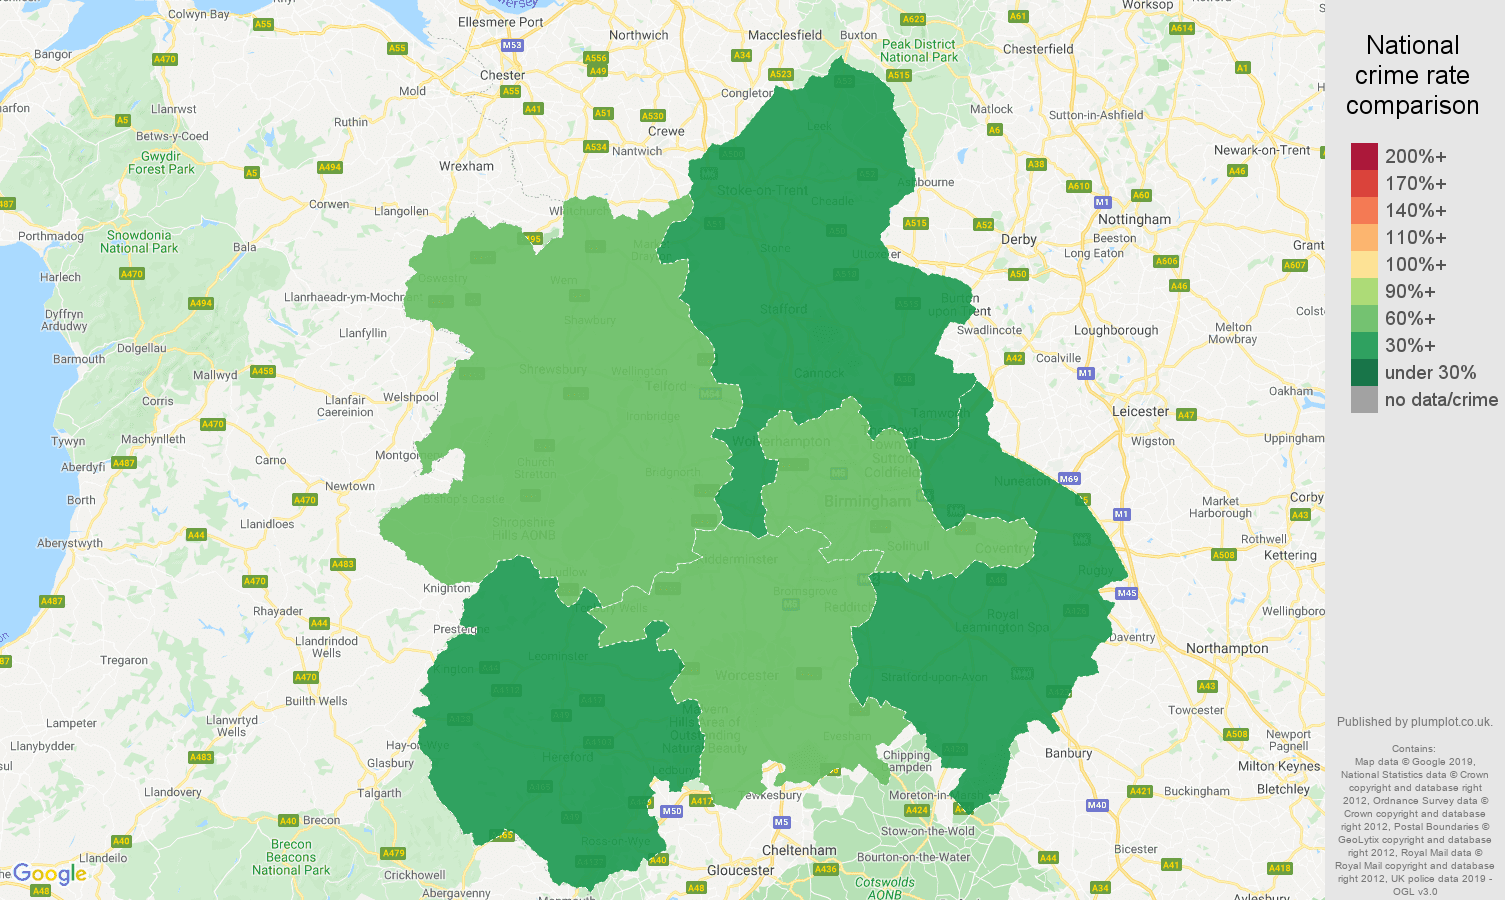 West Midlands public order crime rate comparison map